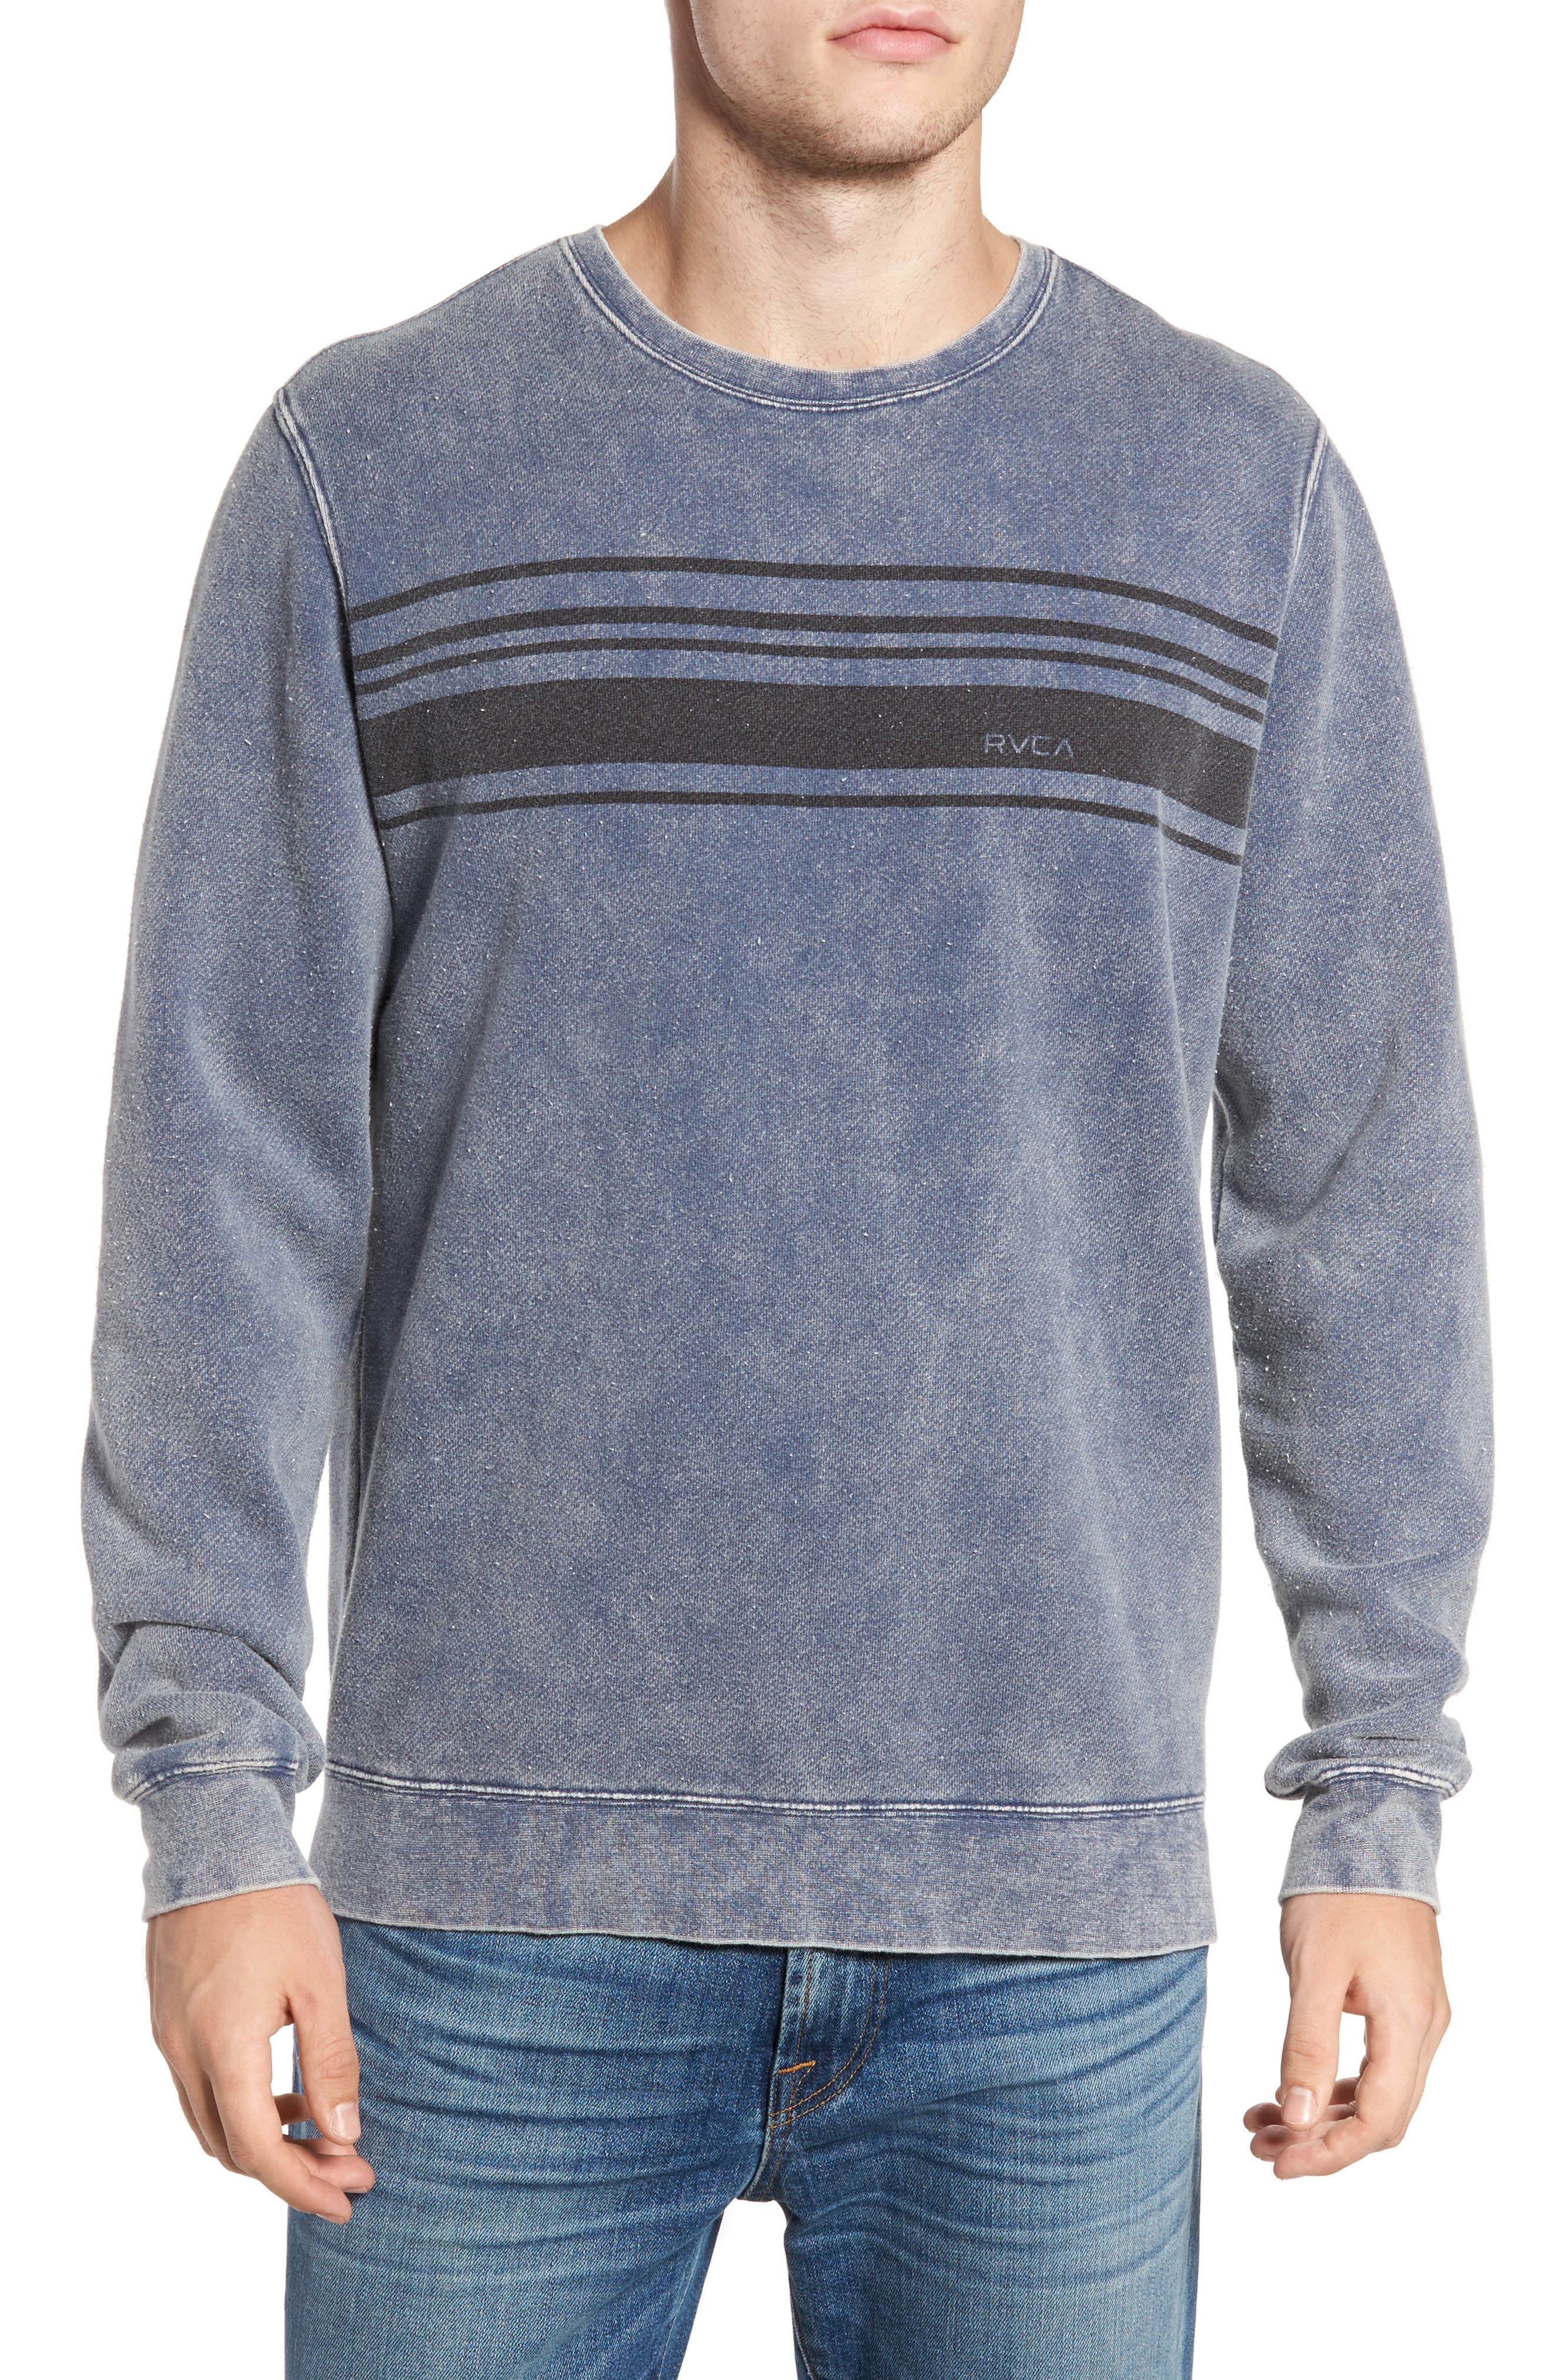 Alternate Image 1 Selected - RVCA Stripe Crewneck Sweatshirt